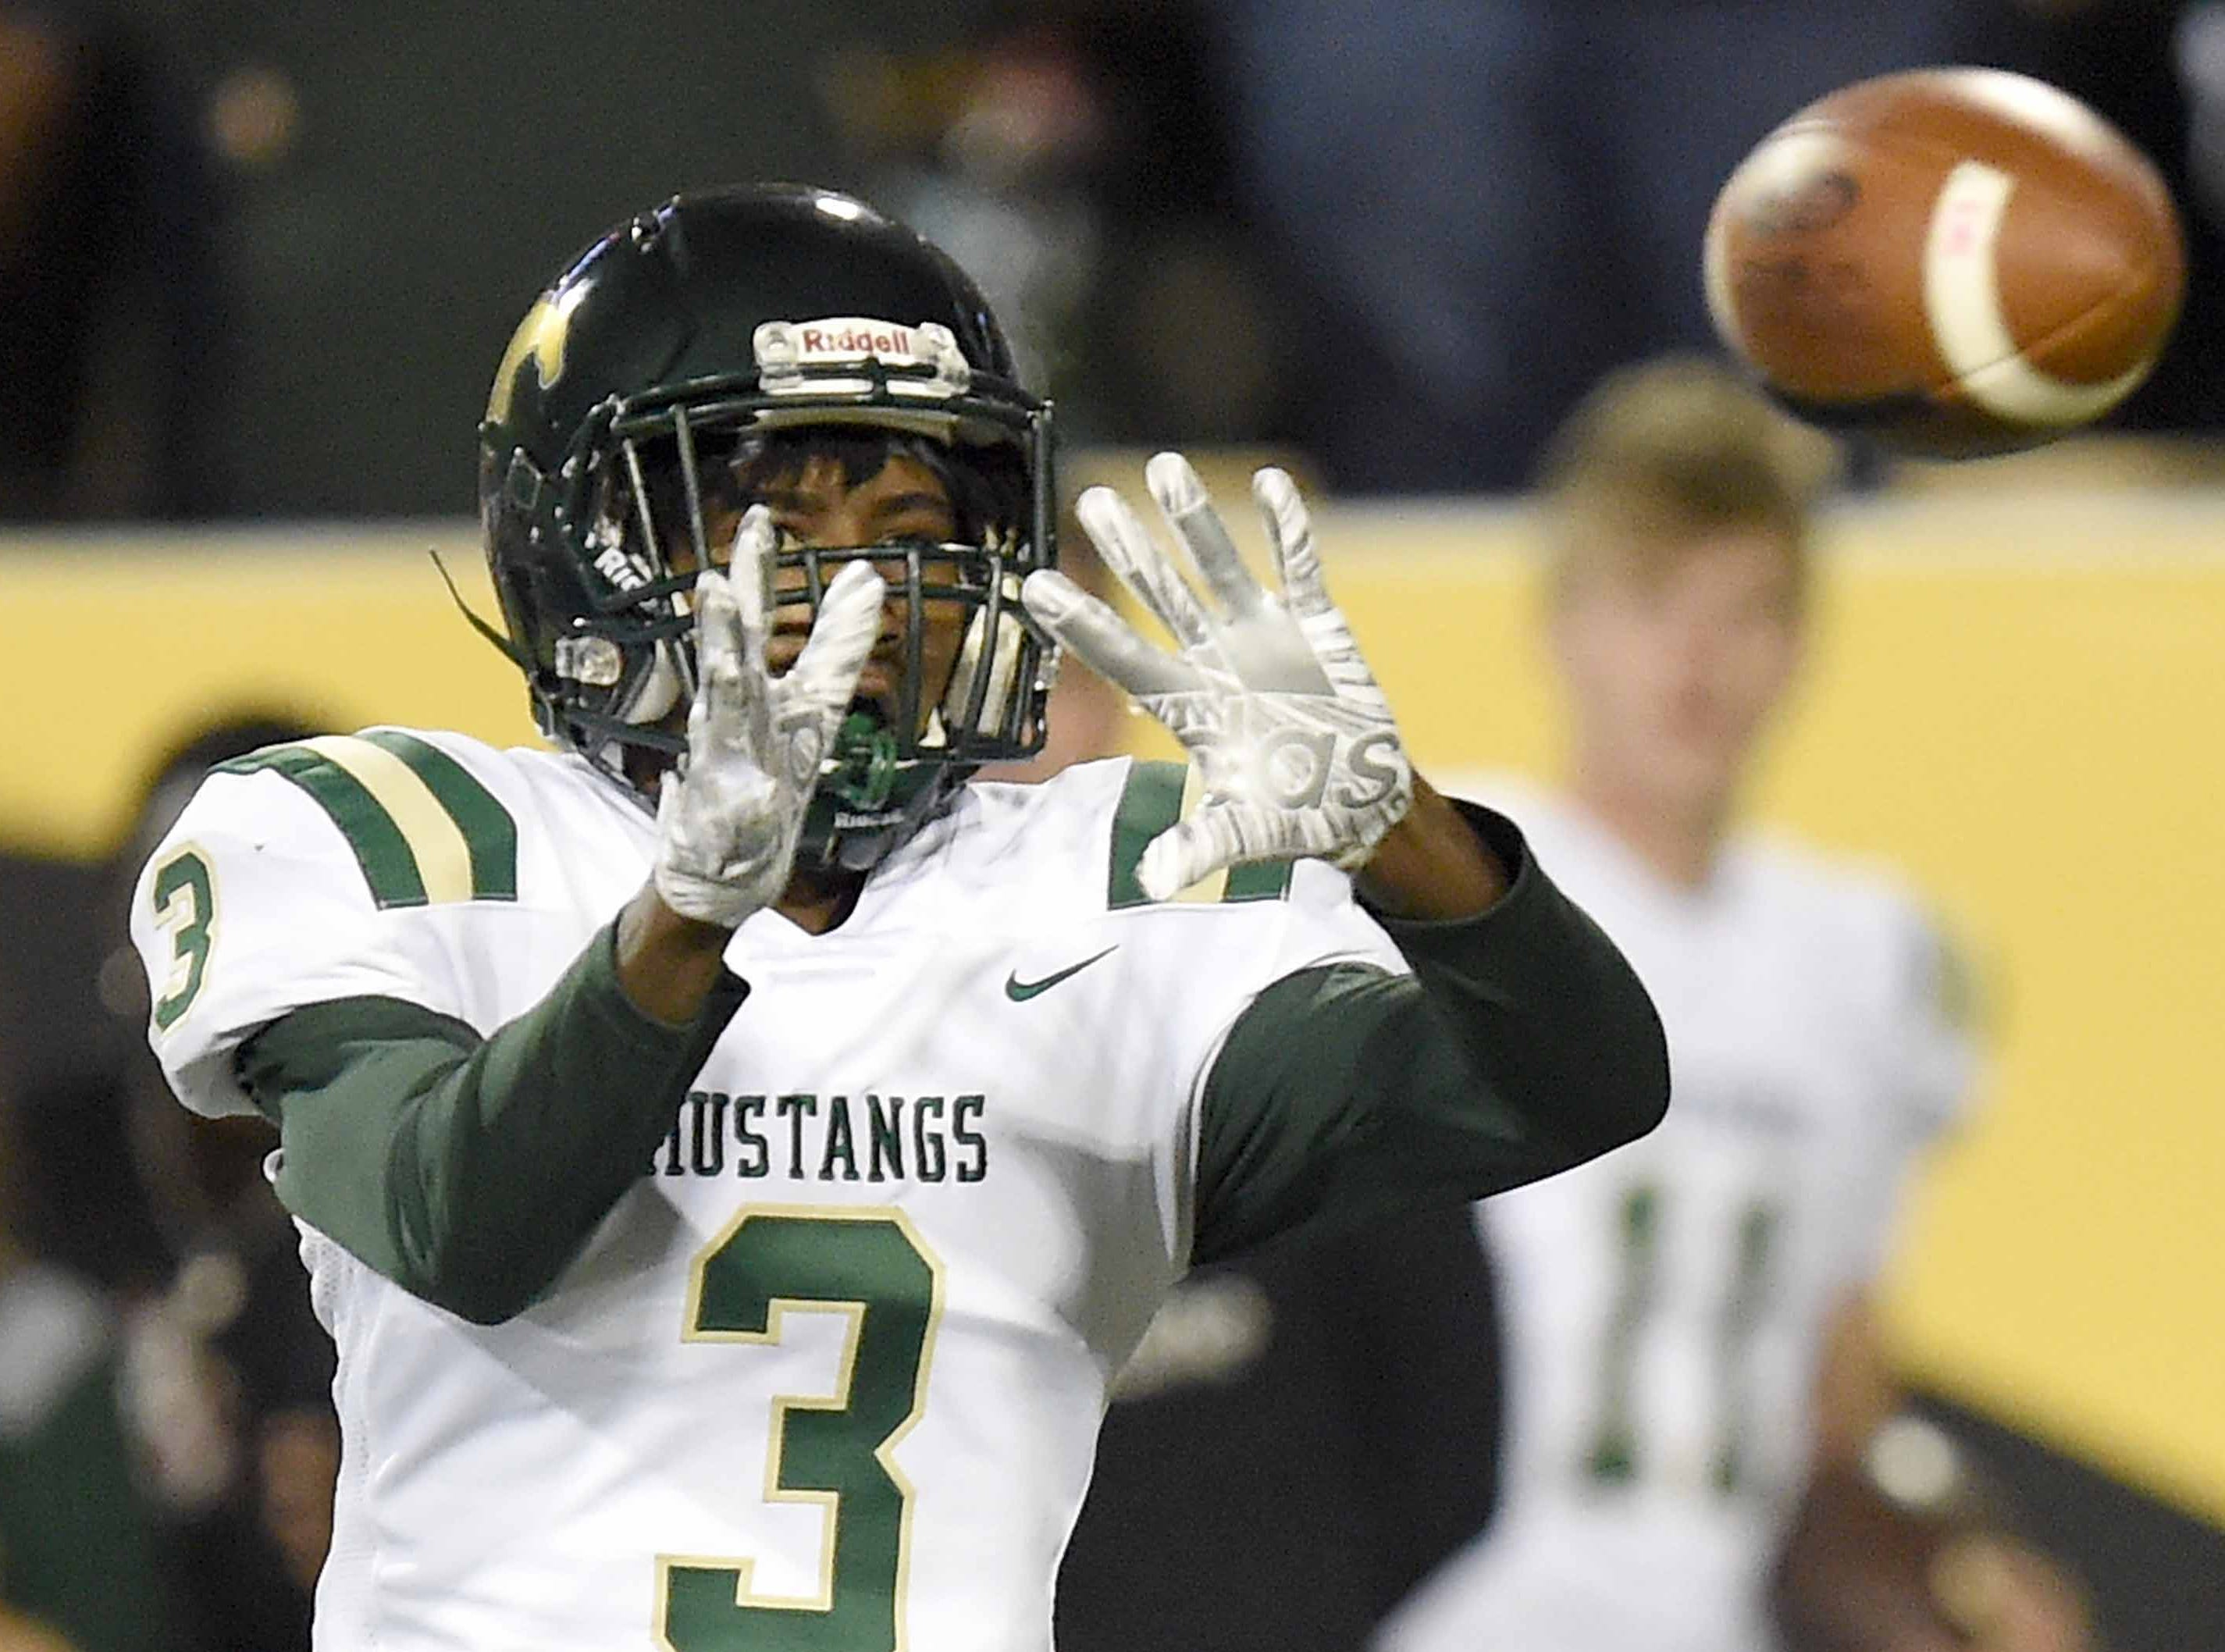 West Jones' Jalen Graham (3) catches a pass against West Point on Saturday, December 1, 2018, in the MHSAA BlueCross BlueShield Gridiron Classic High School Football Championships in M.M. Roberts Stadium on the University of Southern Mississippi campus in Hattiesburg, Miss.